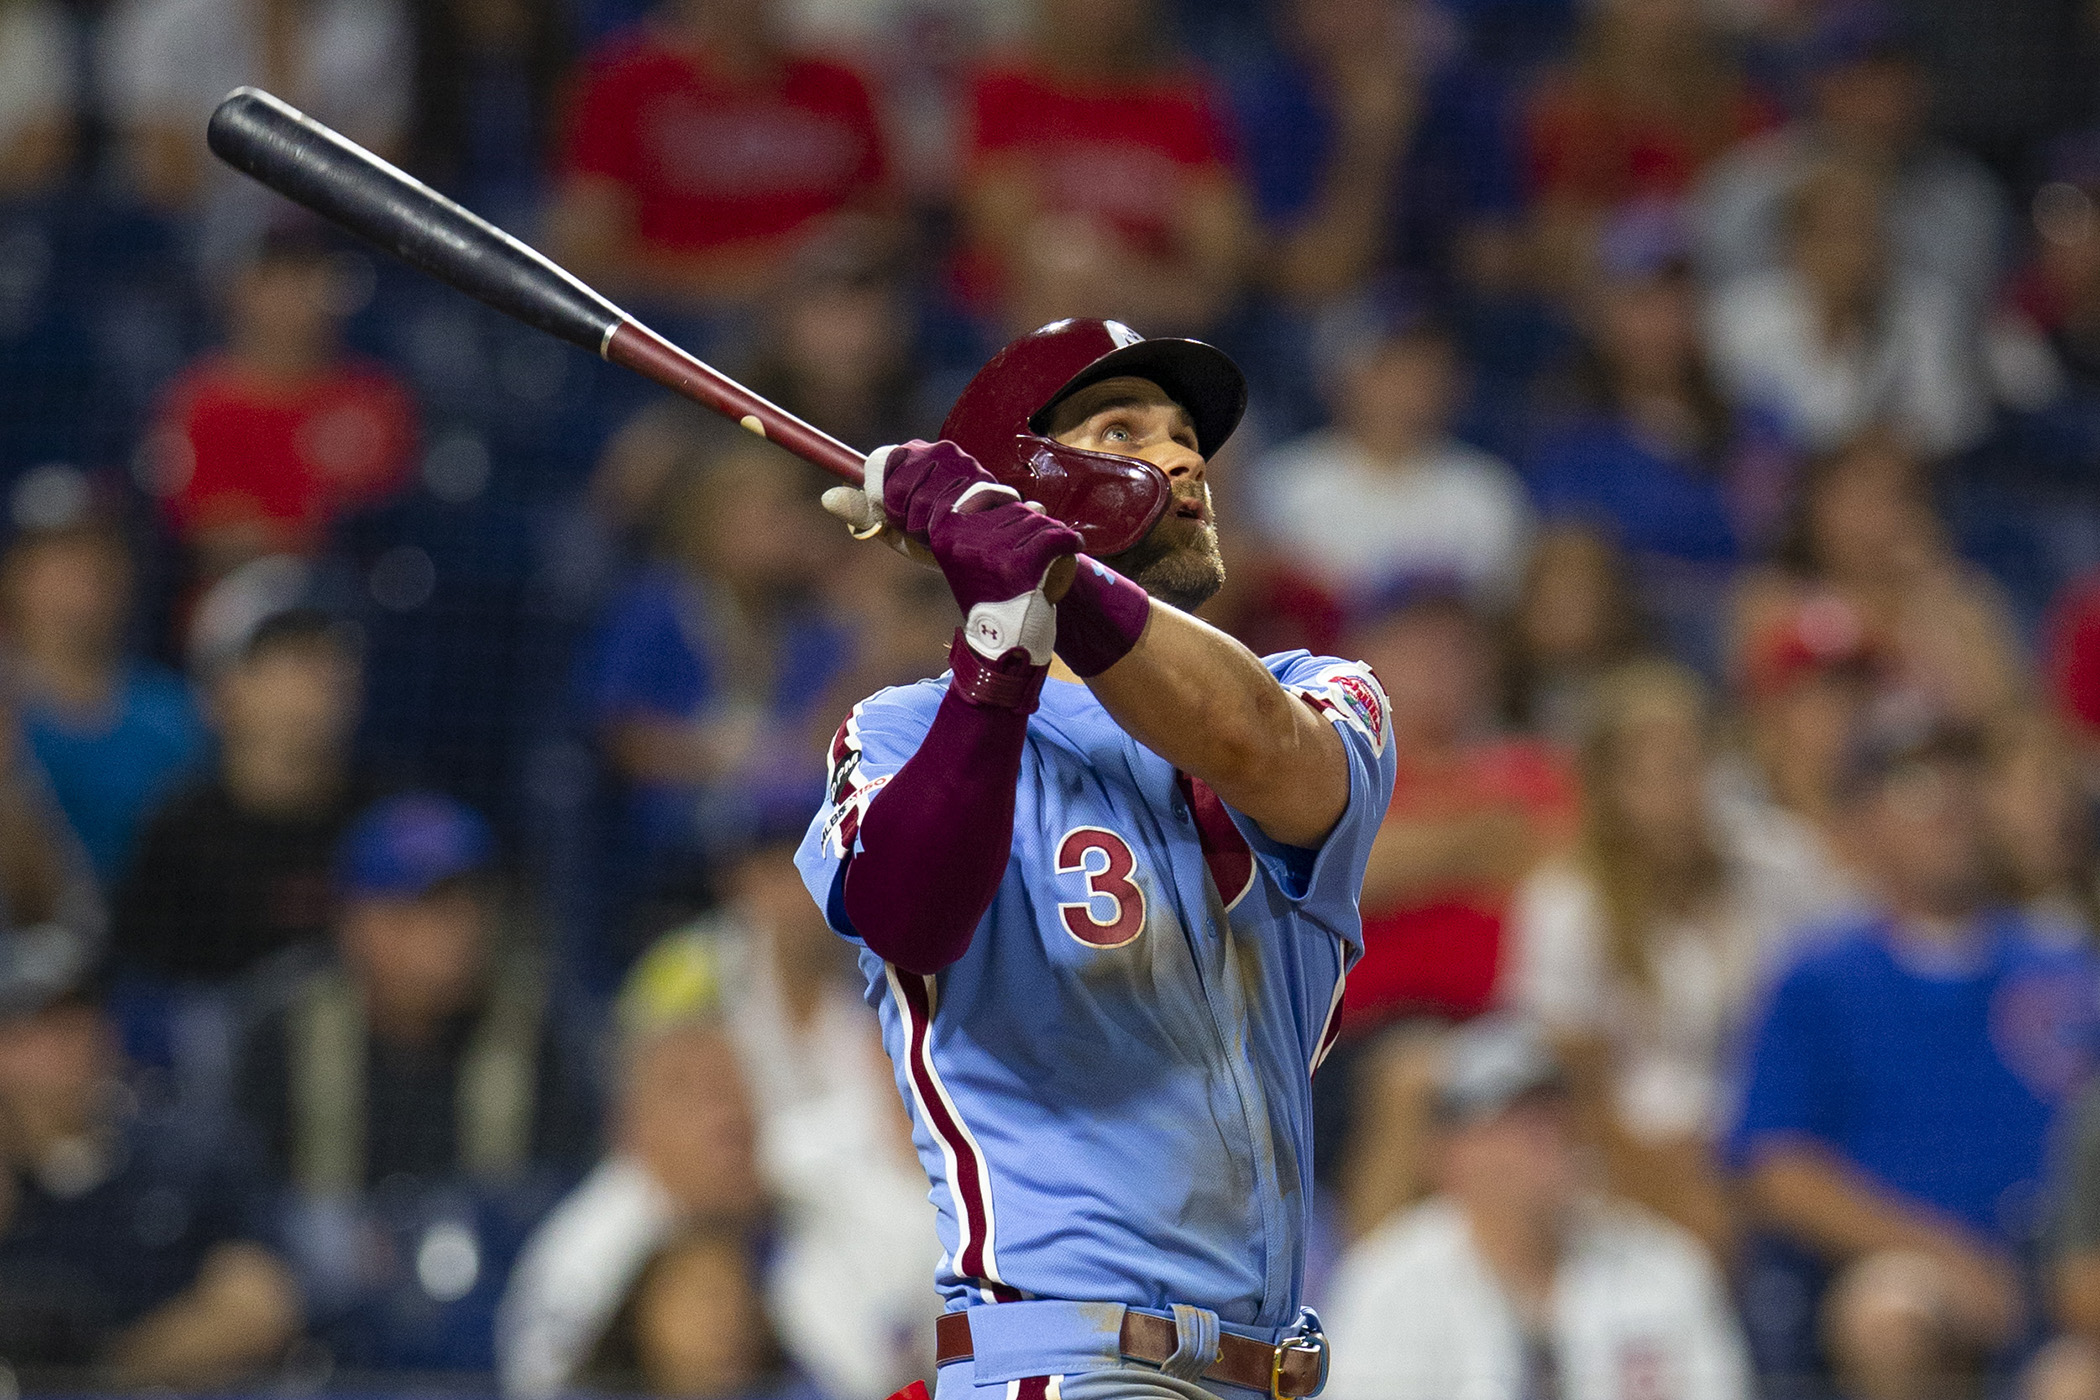 Bryce Harper S Walkoff Grand Slam Lifts Phillies Over Cubs The Boston Globe